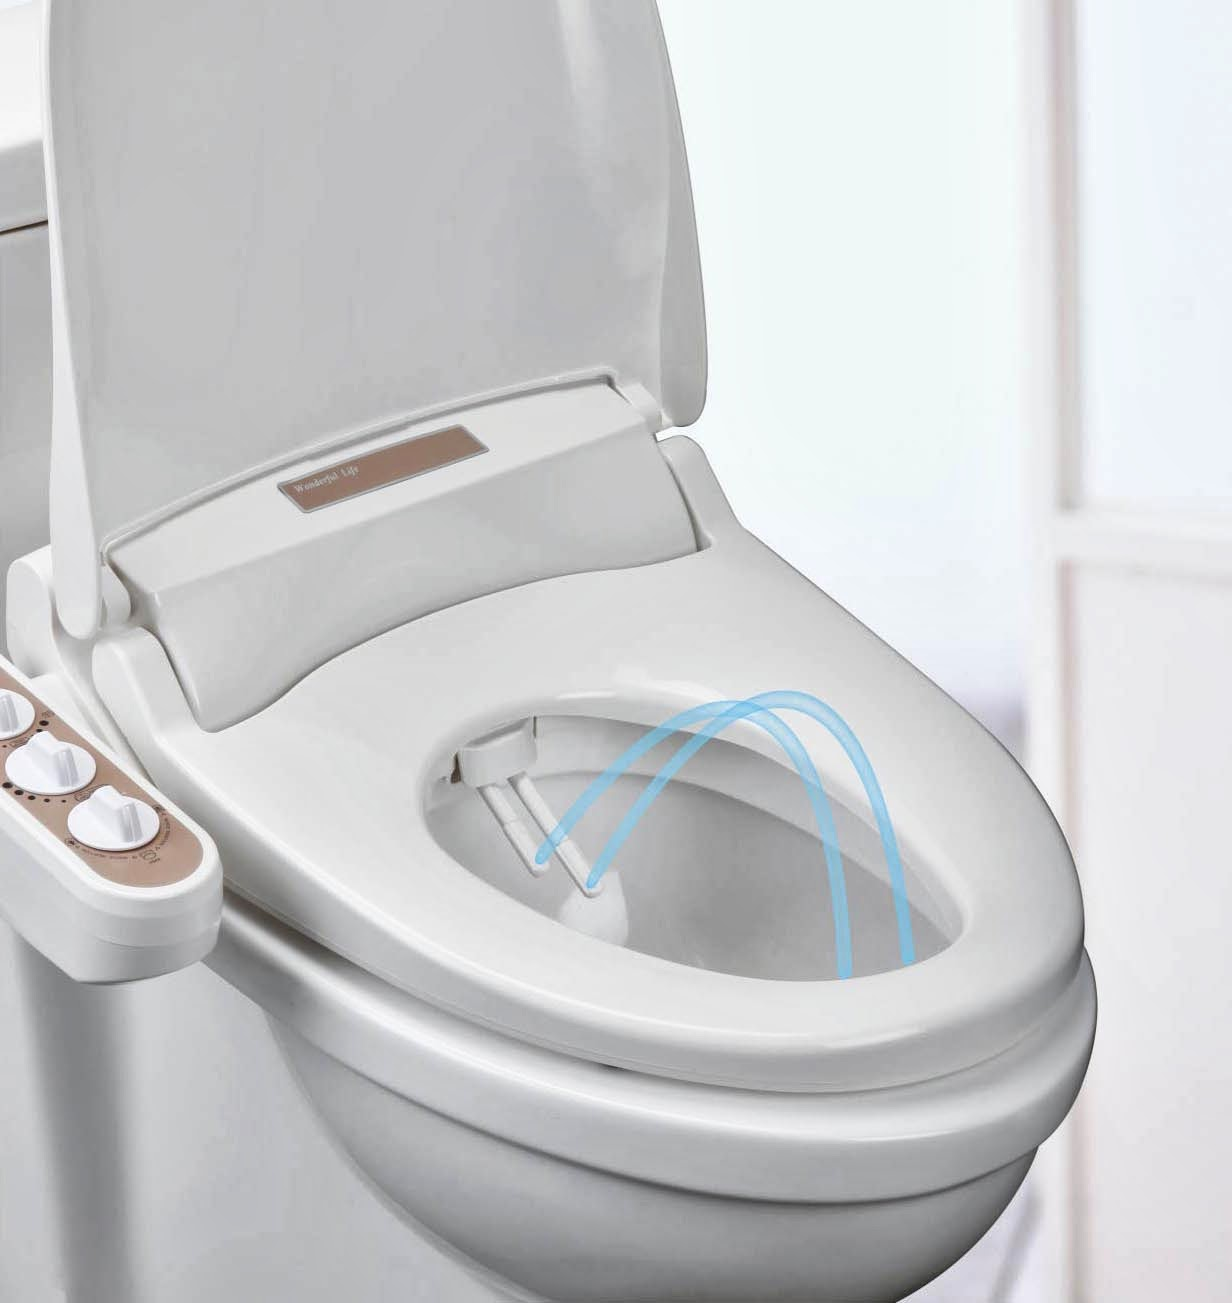 Entree kibbles an ideal purchase for my ass the wellness bidet - What is a bidet used for ...